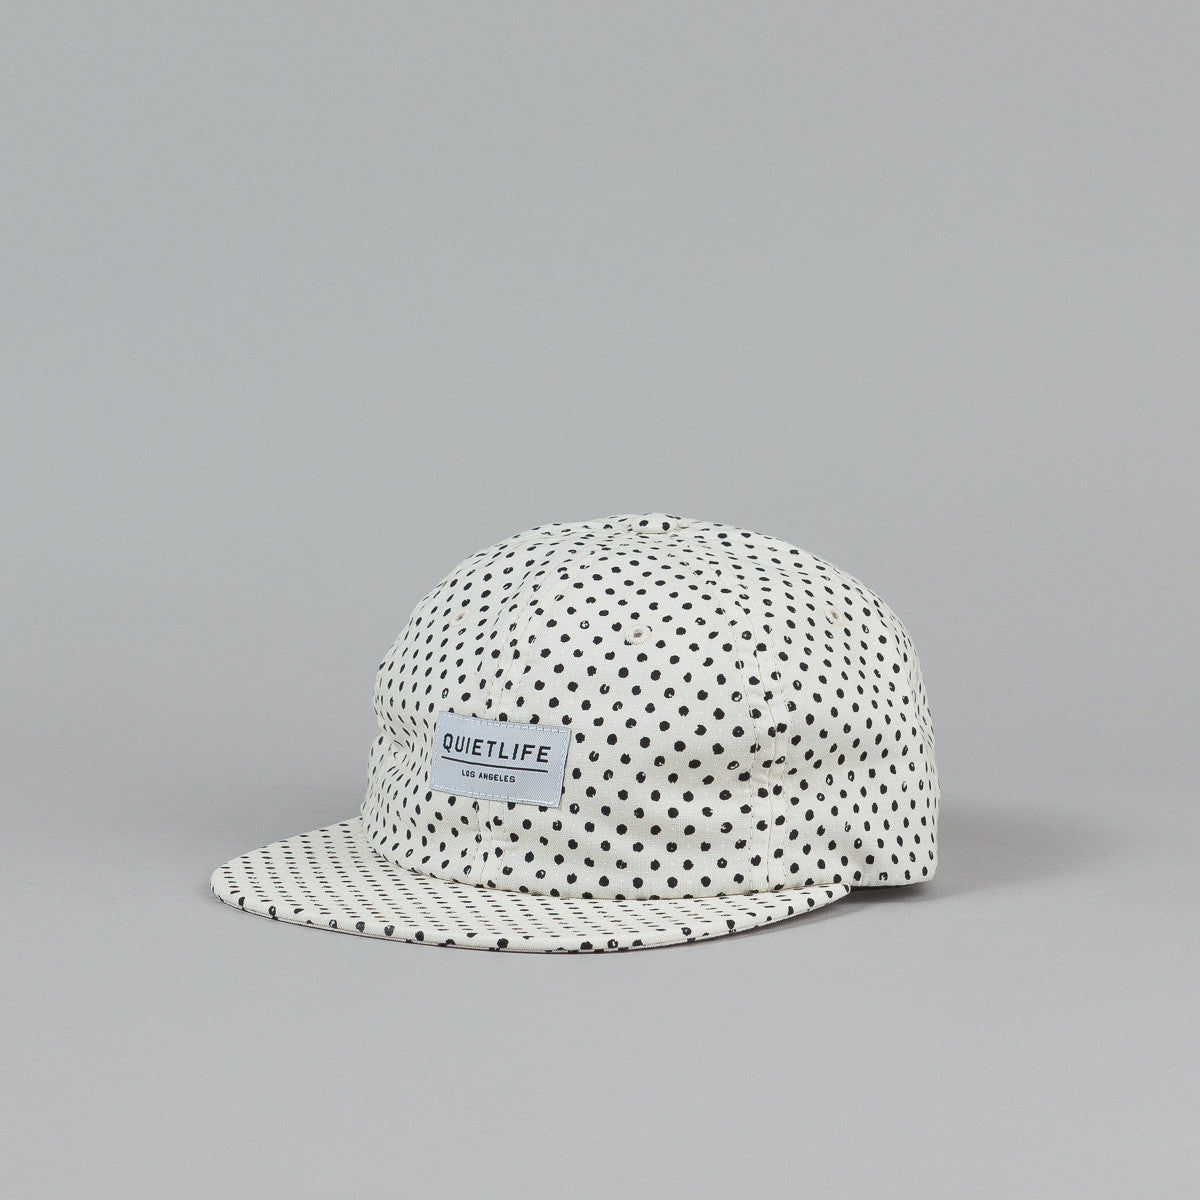 The Quiet Life Painted Dot Polo Cap